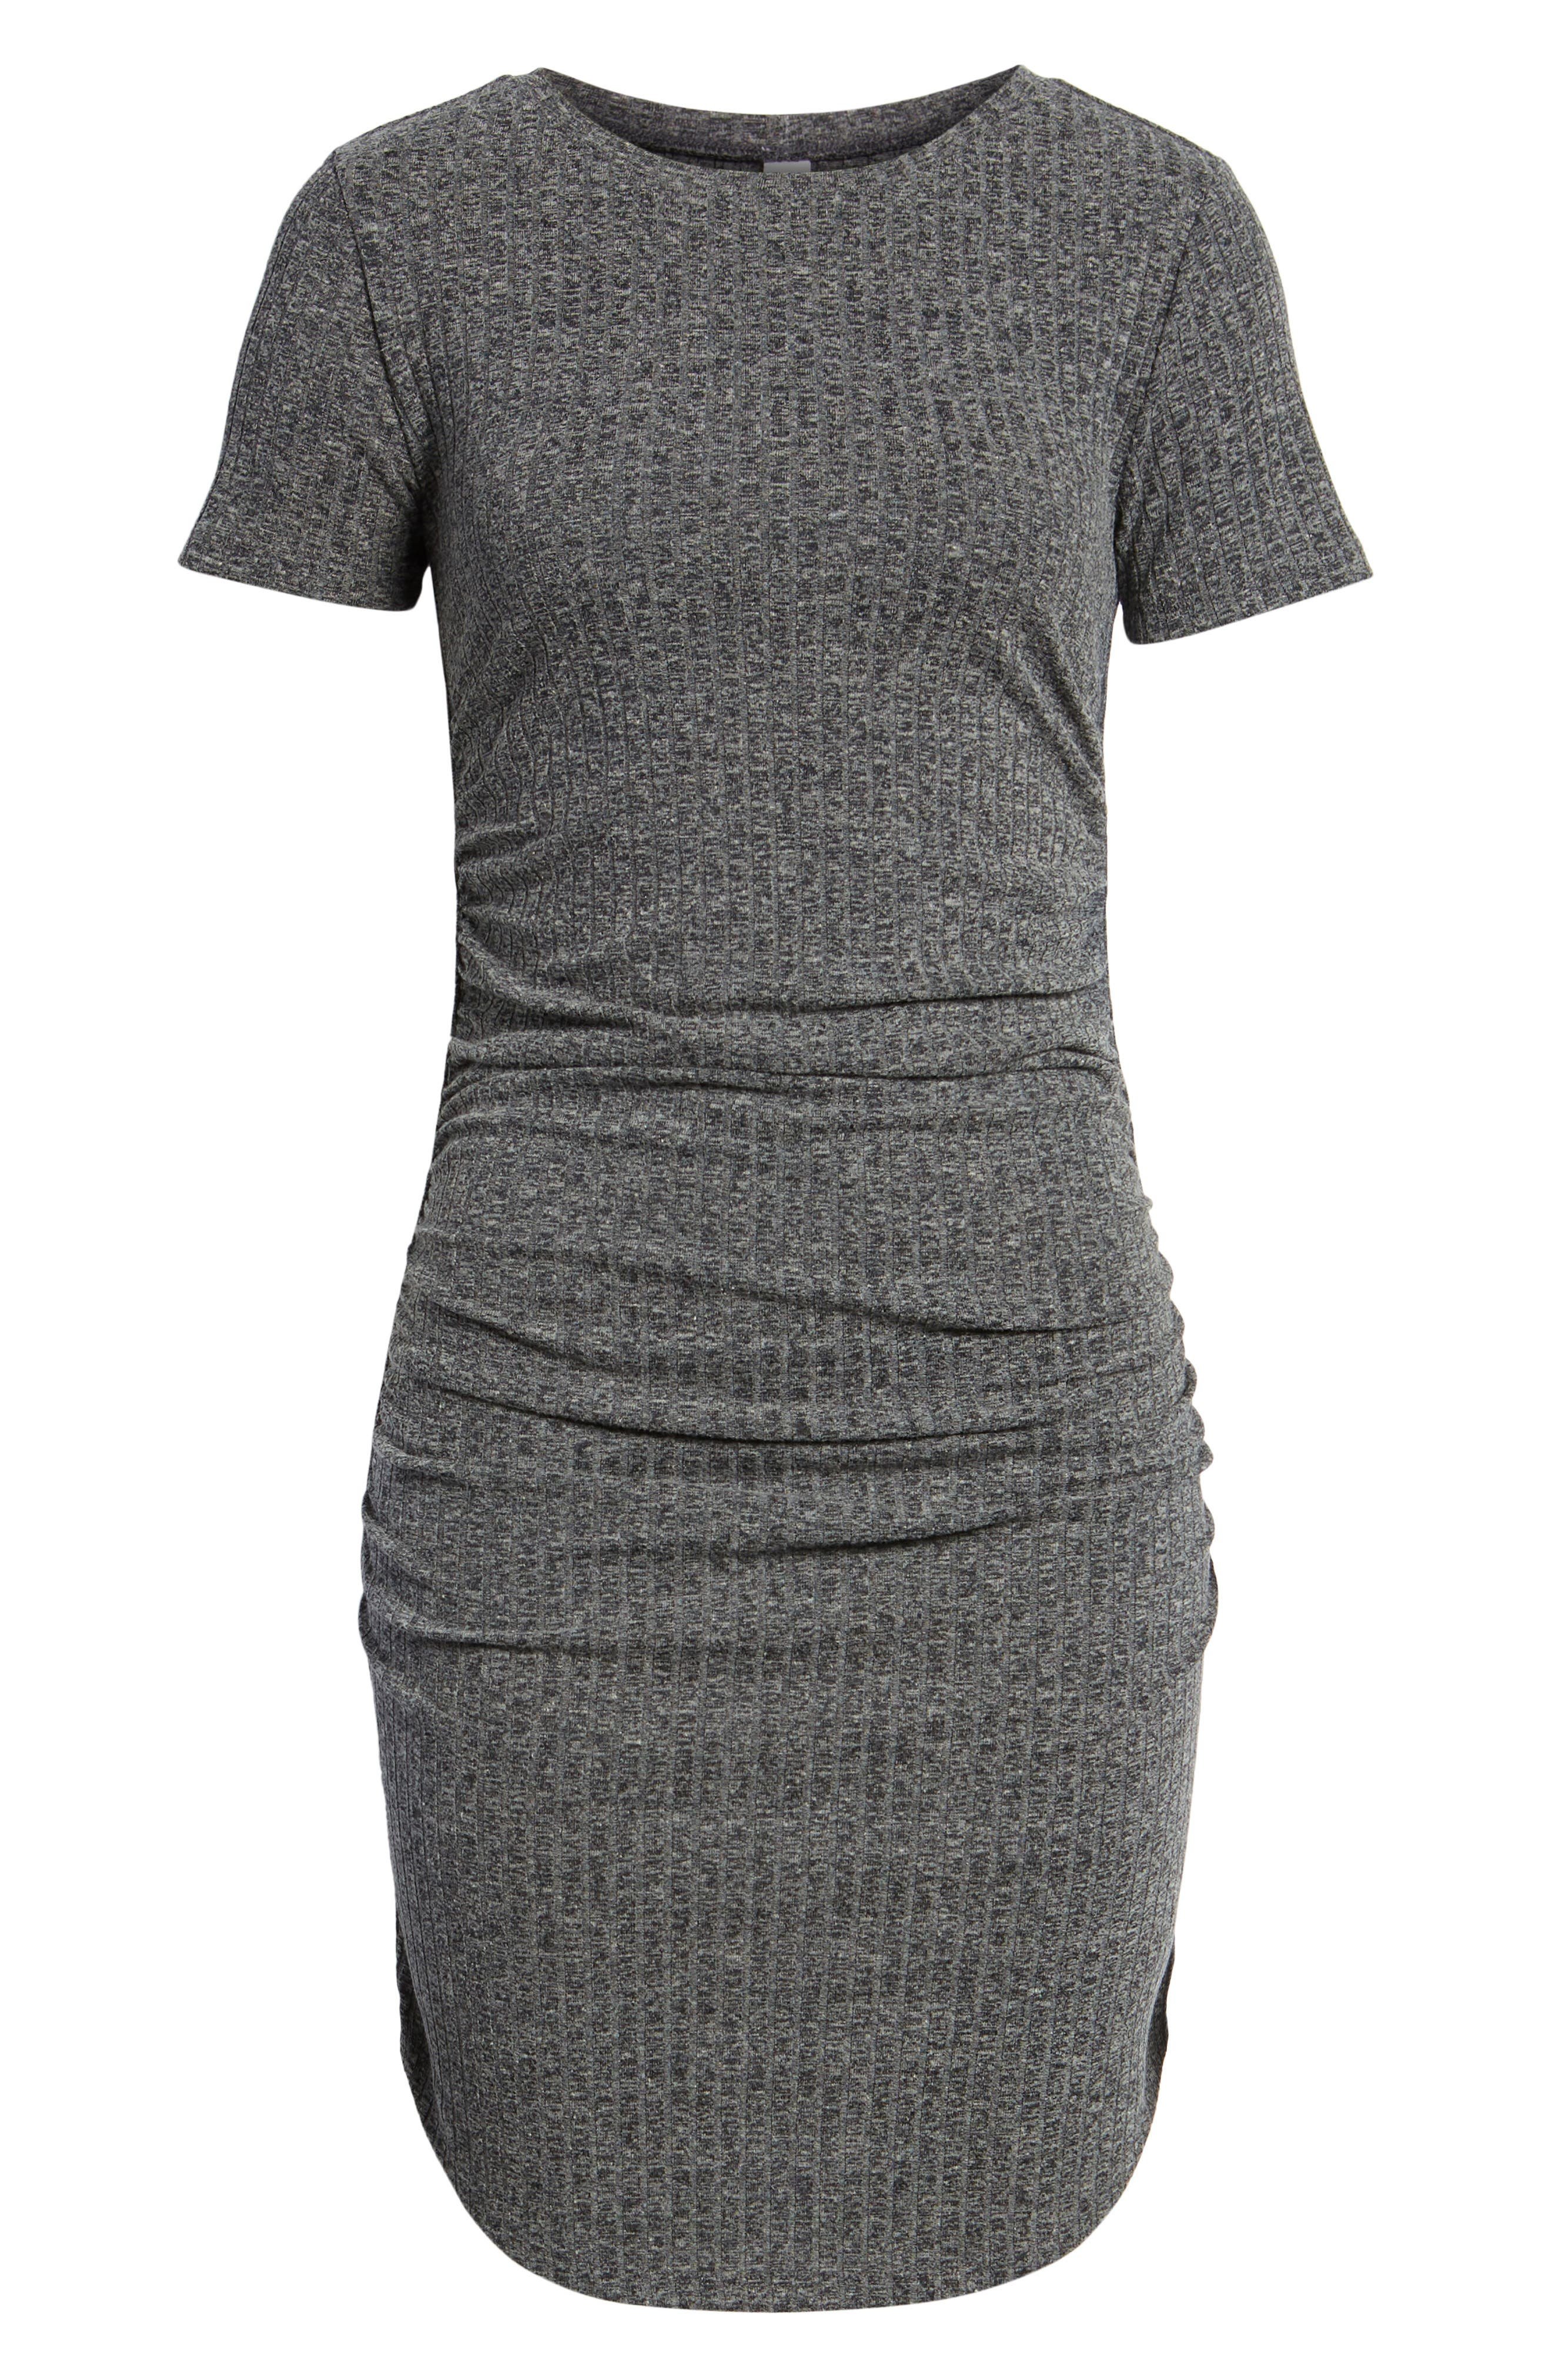 Ruched Ribbed Body-Con Dress,                             Alternate thumbnail 7, color,                             GREY MEDIUM CHARCOAL HEATHER